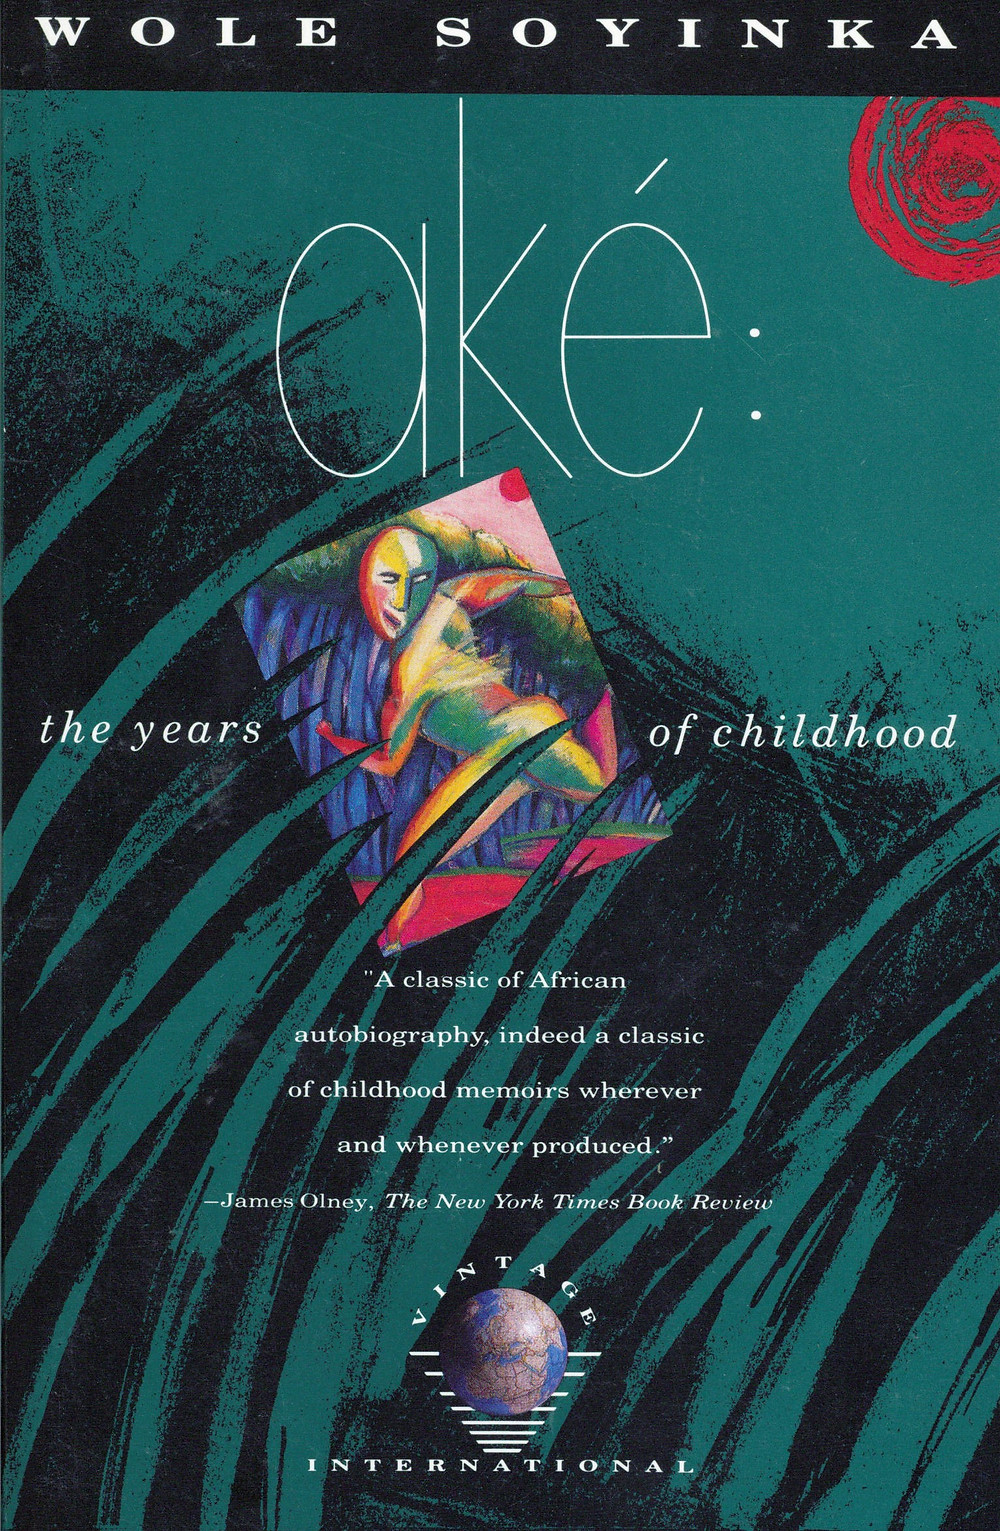 1981: Aké: The Years of Childhood by Wole Soyinka tells the story of Soyinka's boyhood before and during World War II in a Yoruba village in western Nigeria called Aké.